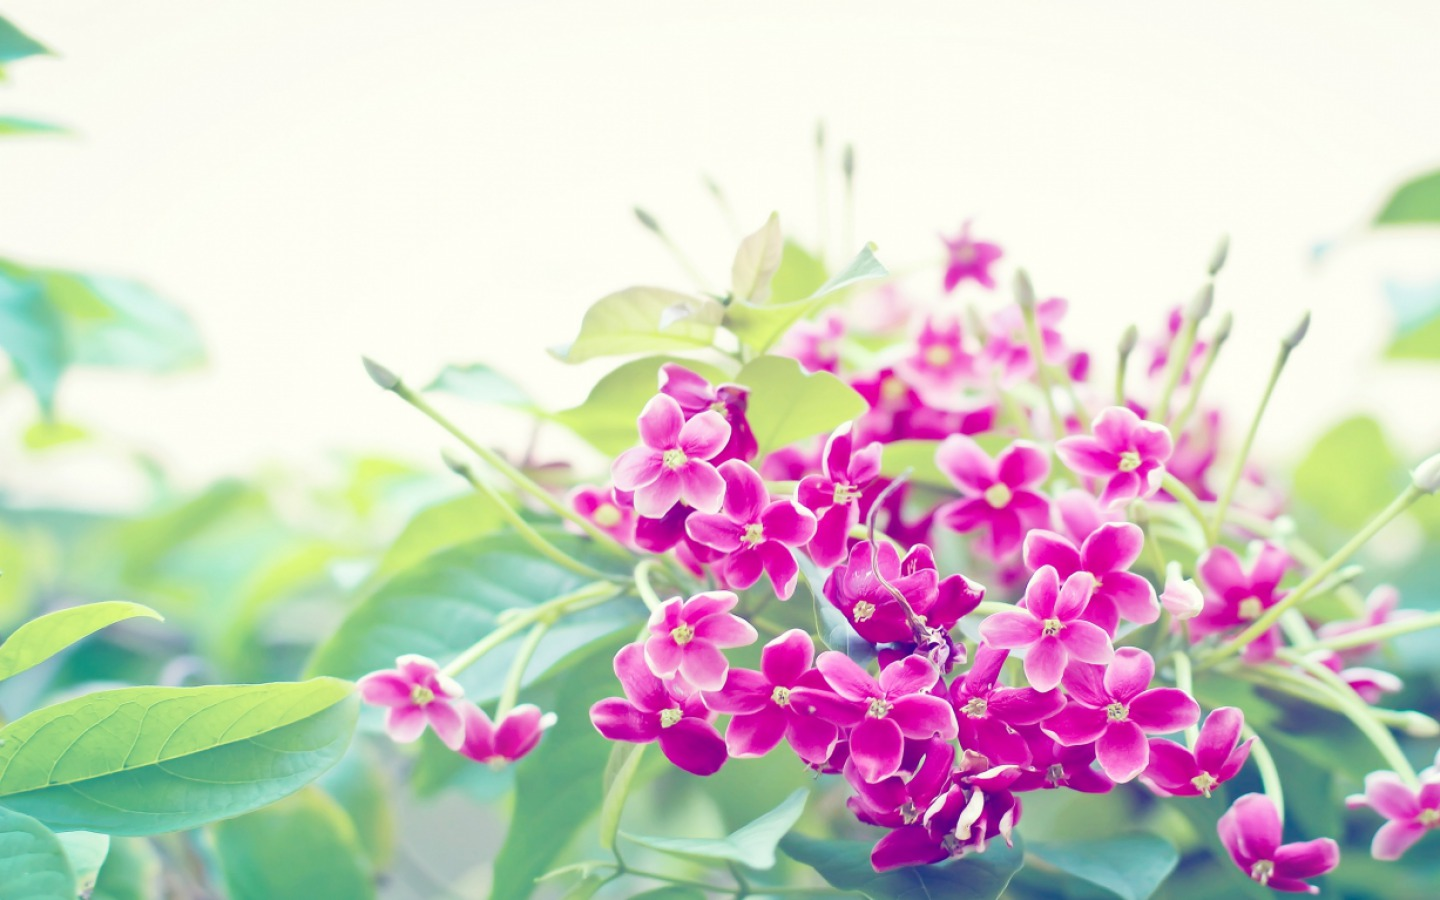 Flowers images Flowers HD wallpaper and background photos